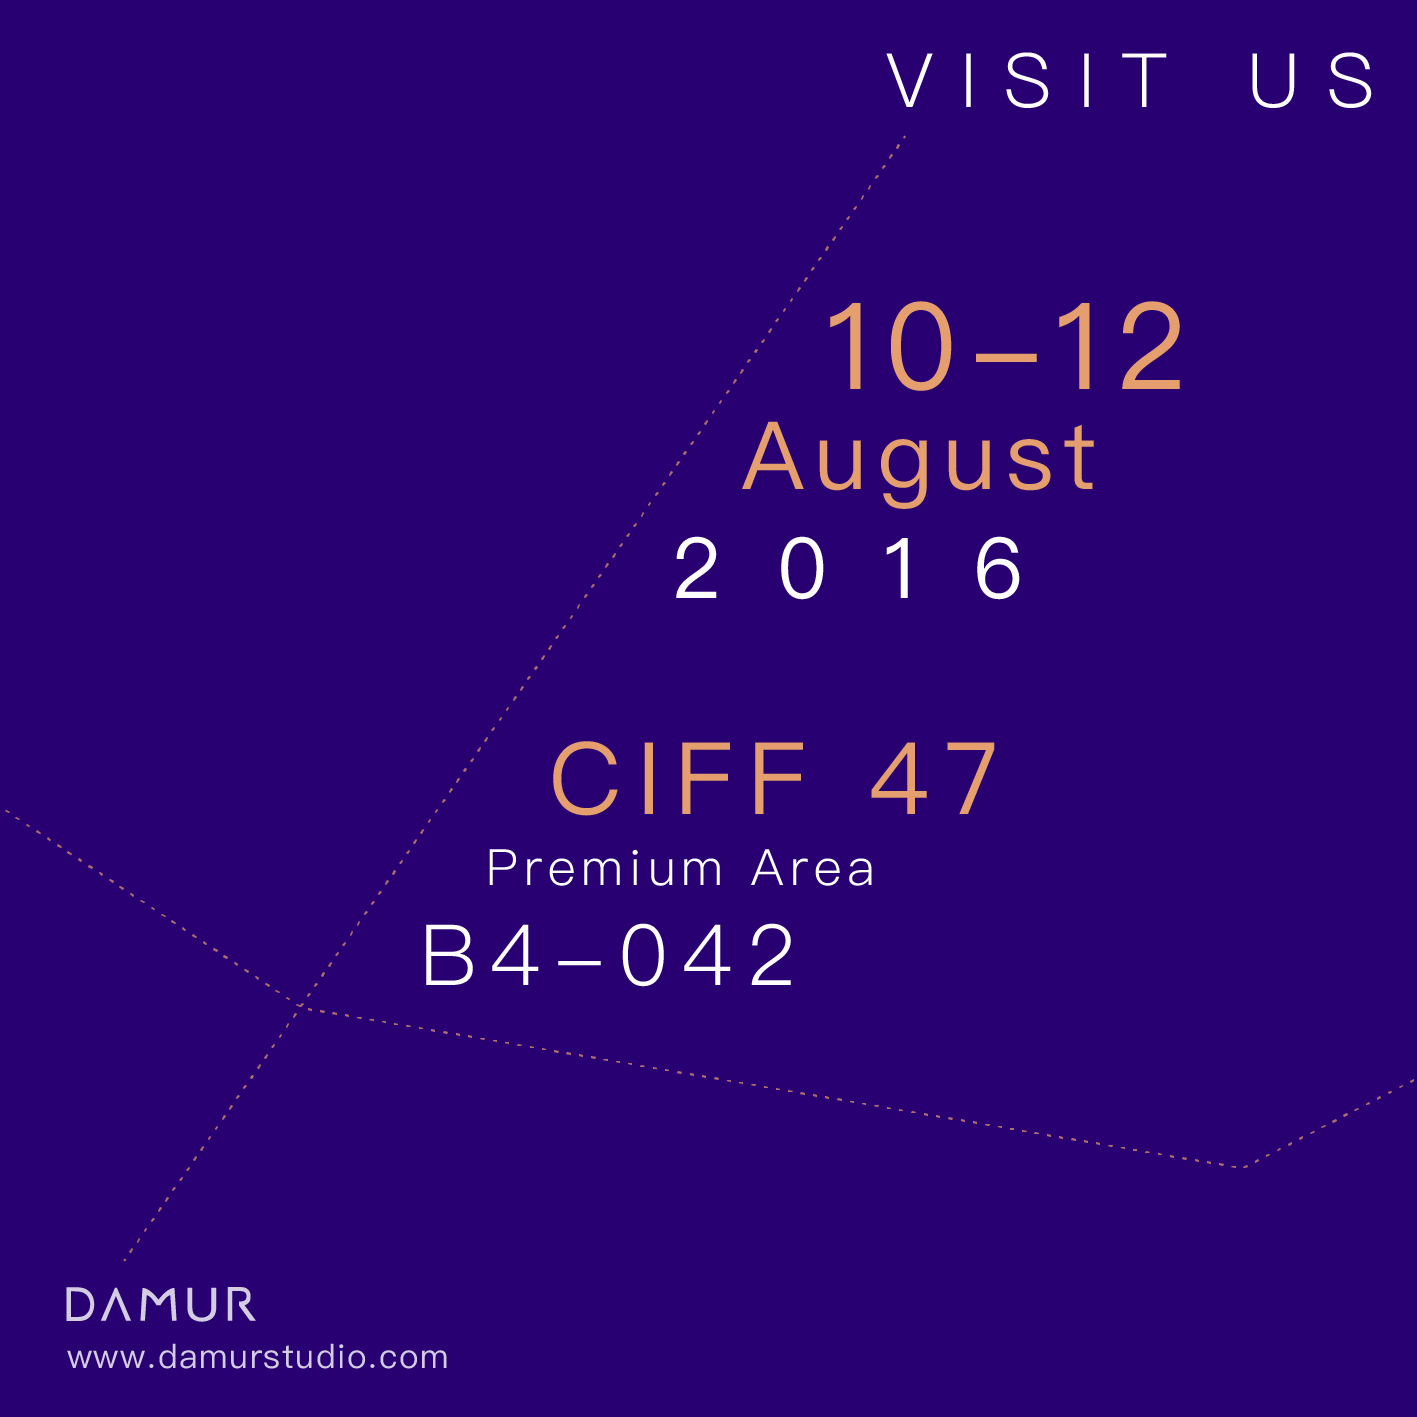 DAMUR-CIFF47-Invitation_v6.png